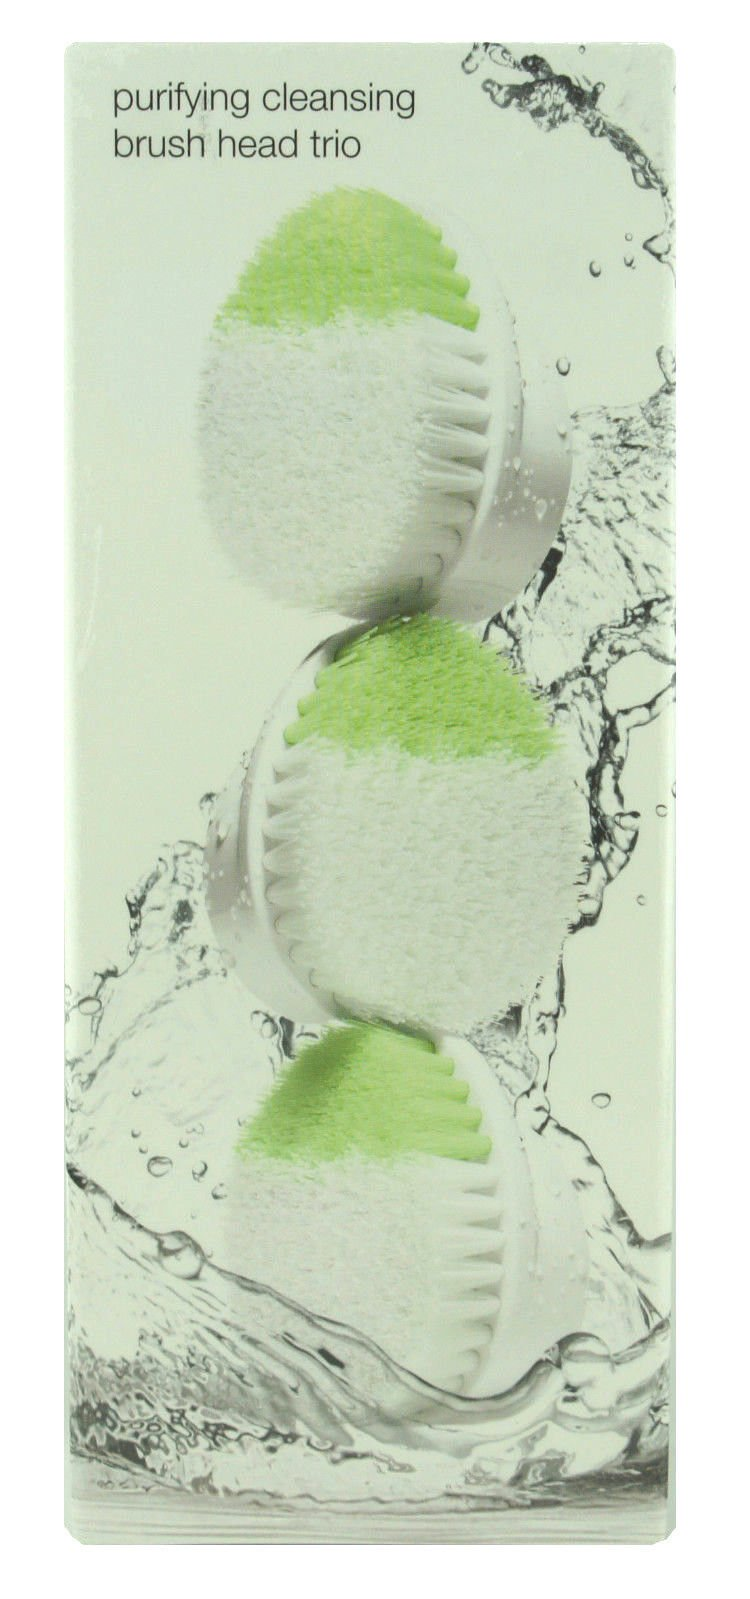 Clinique Purifying Cleansing Brush Head Refill Trio for Sonic System (3pc Set) ~ $90.00 Value by C